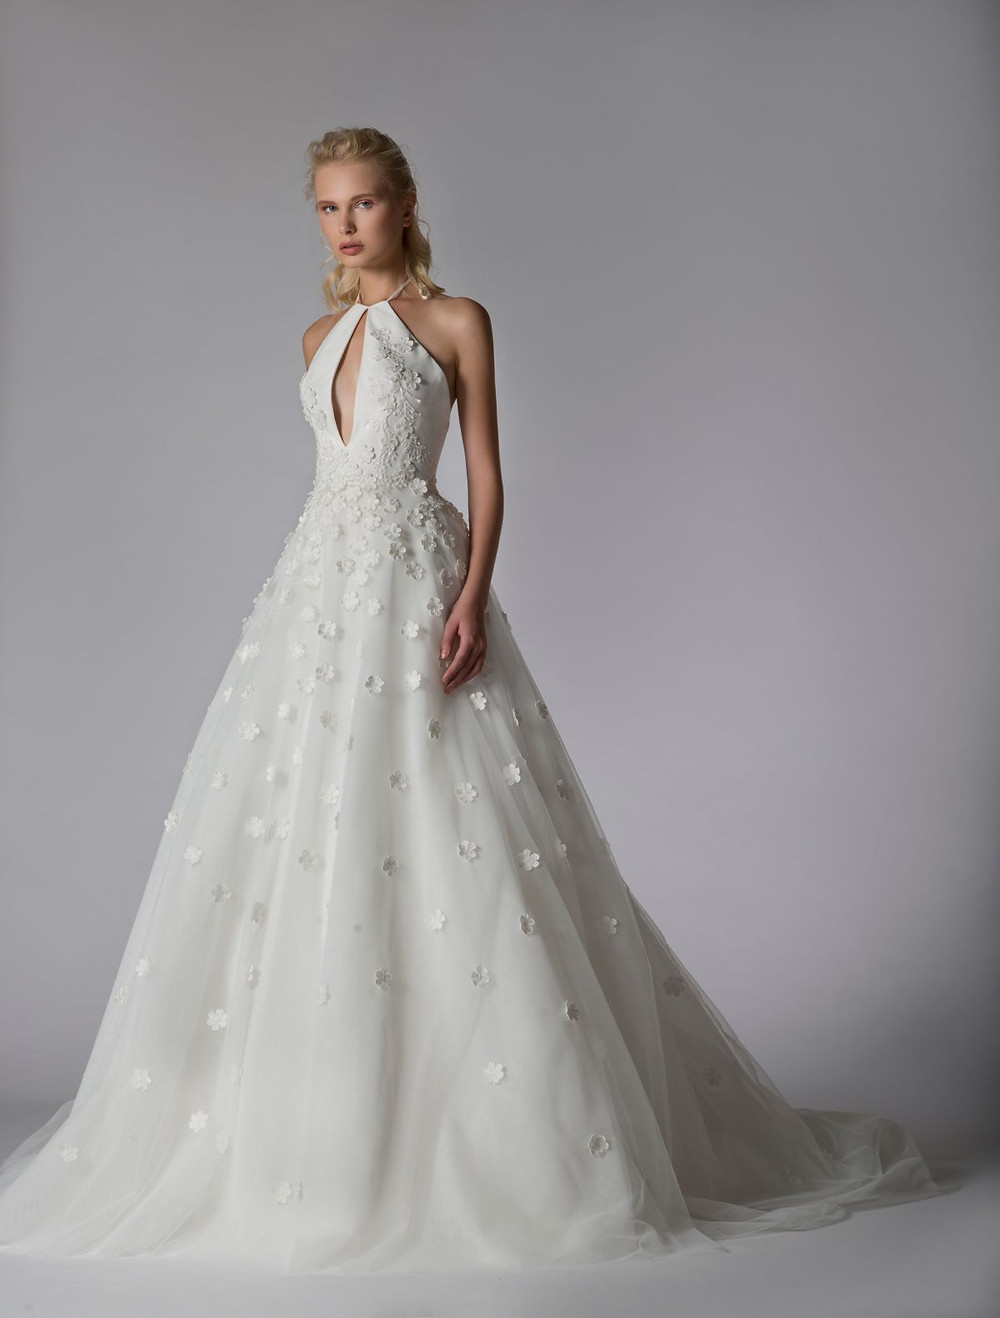 A Georges Hobeika halterneck ball gown wedding dress with flowers